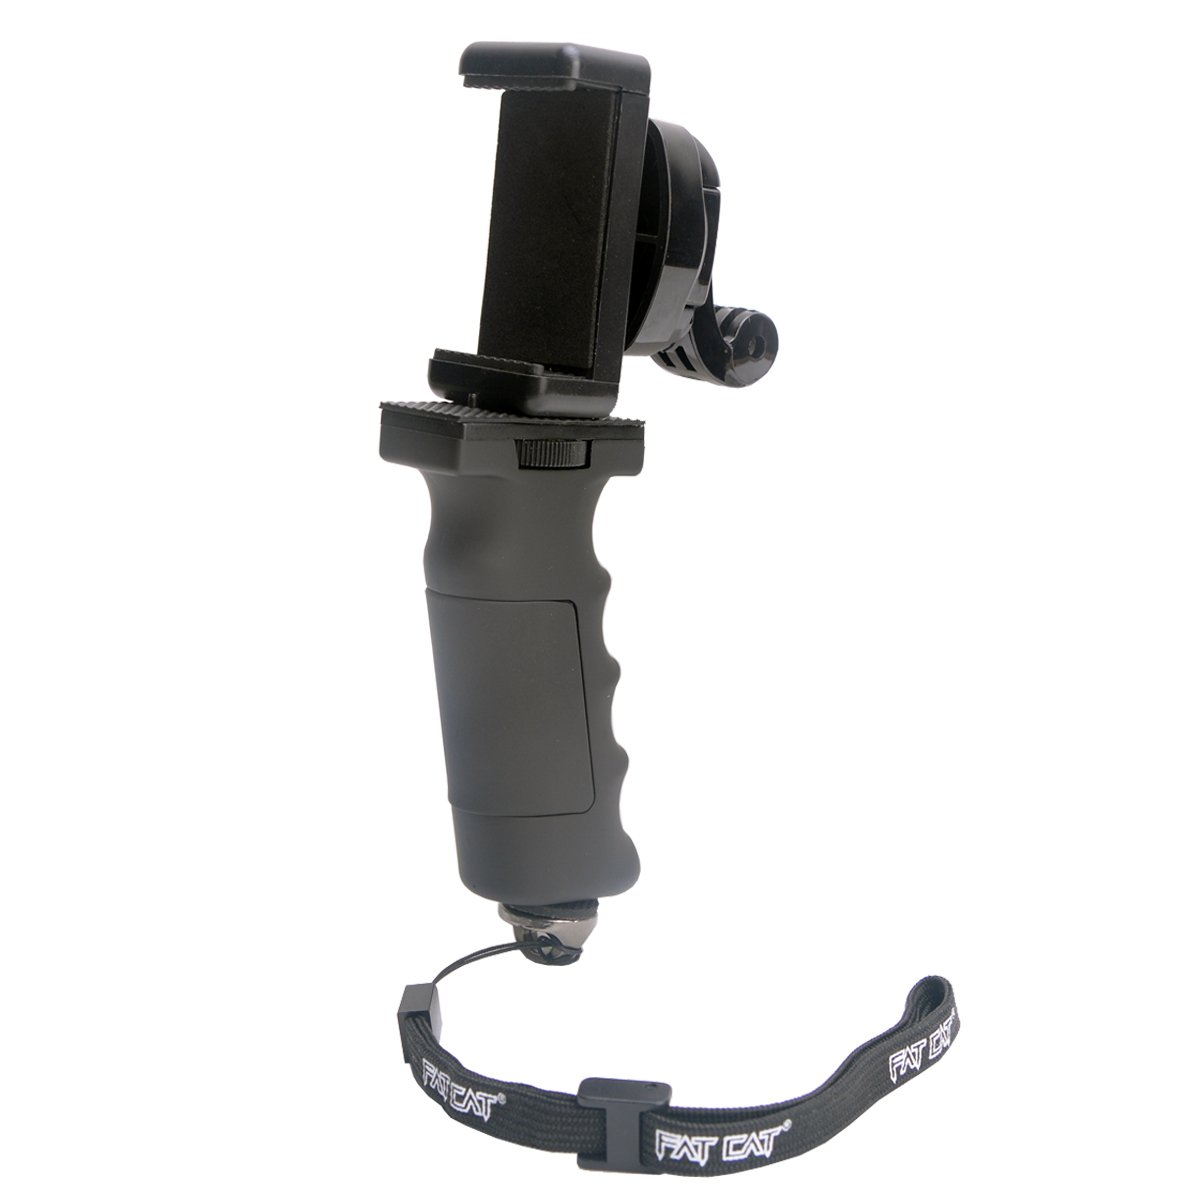 Ergonomic Action Camera Handle Grip Support w/ Smartphone Clip for GoPro Grip Holder Support for GoPro Hero 5 /4/3/Session Garmin Virb XE Xiaomi Yi SJCAM Hand Grip Mount Selfie Stick by non-brand (Image #5)